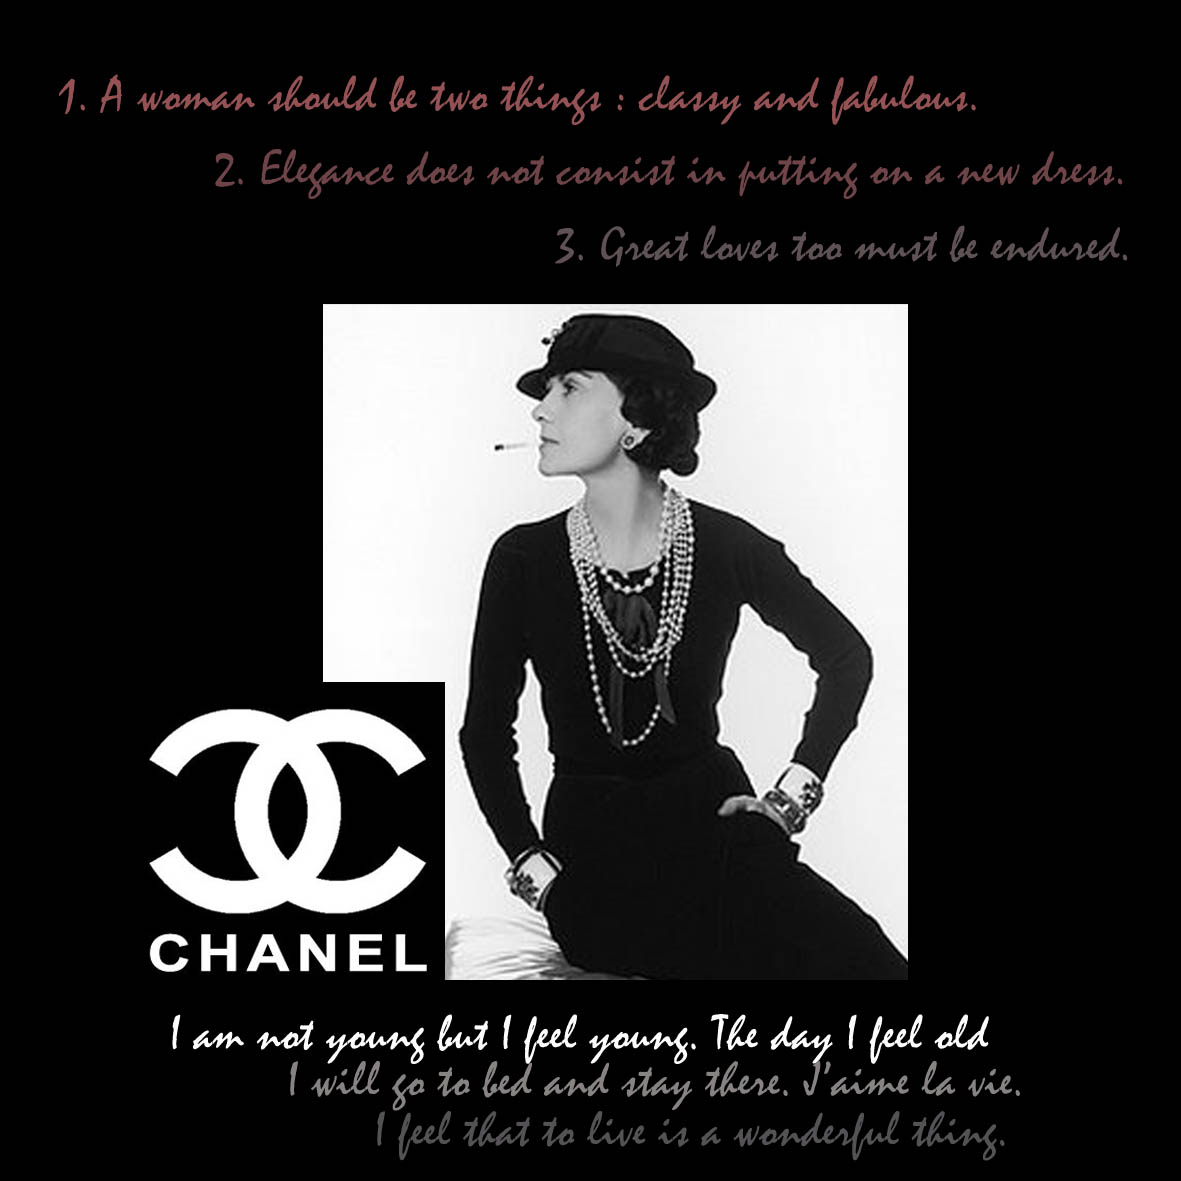 Quotes For Cover Photo: Coco Chanel Quotes Facebook Covers. QuotesGram